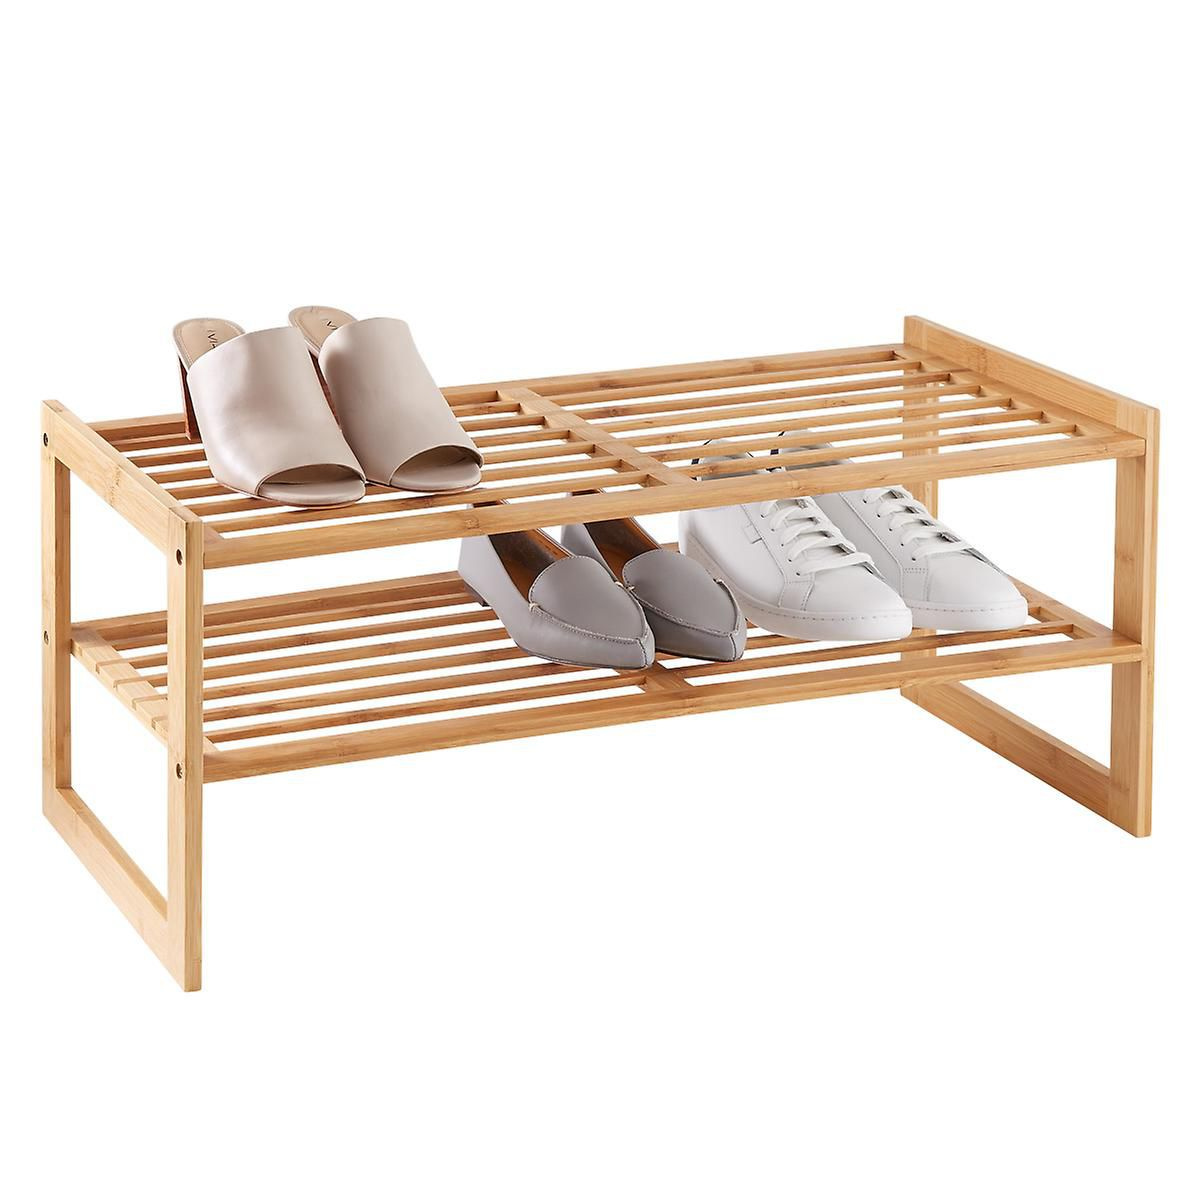 The Container Store 2-Tier Bamboo Stackable Shoe Shelf